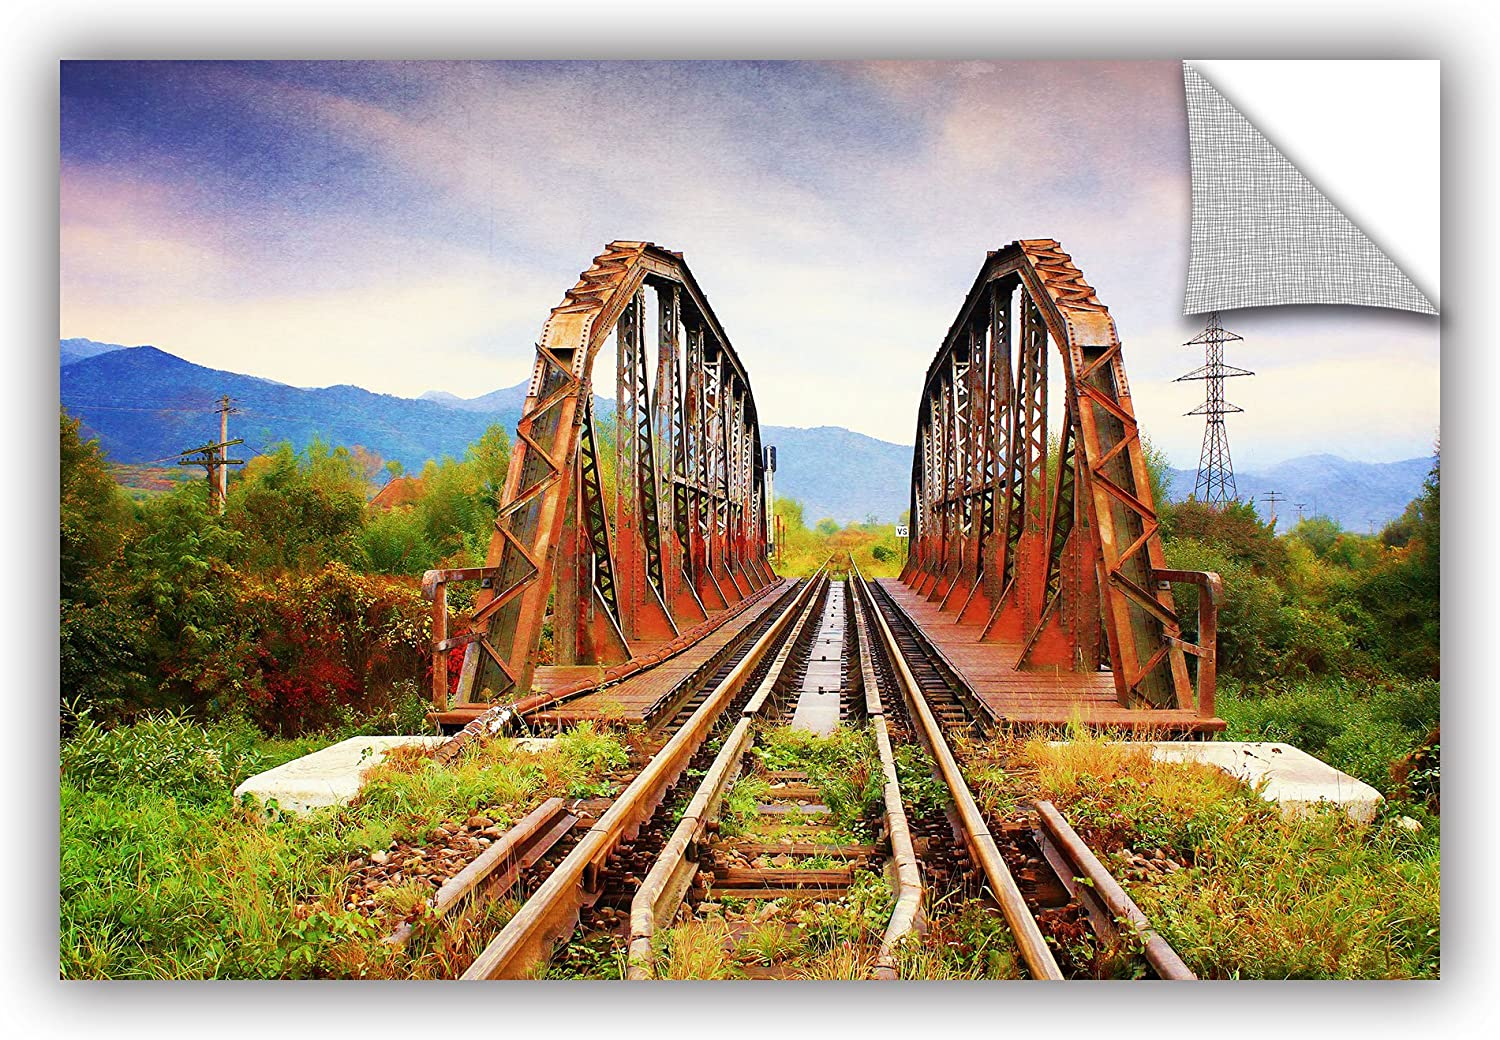 ArtWall Dragos Dumitrascus Iron Bridge Removable Wall Art 24 x 36